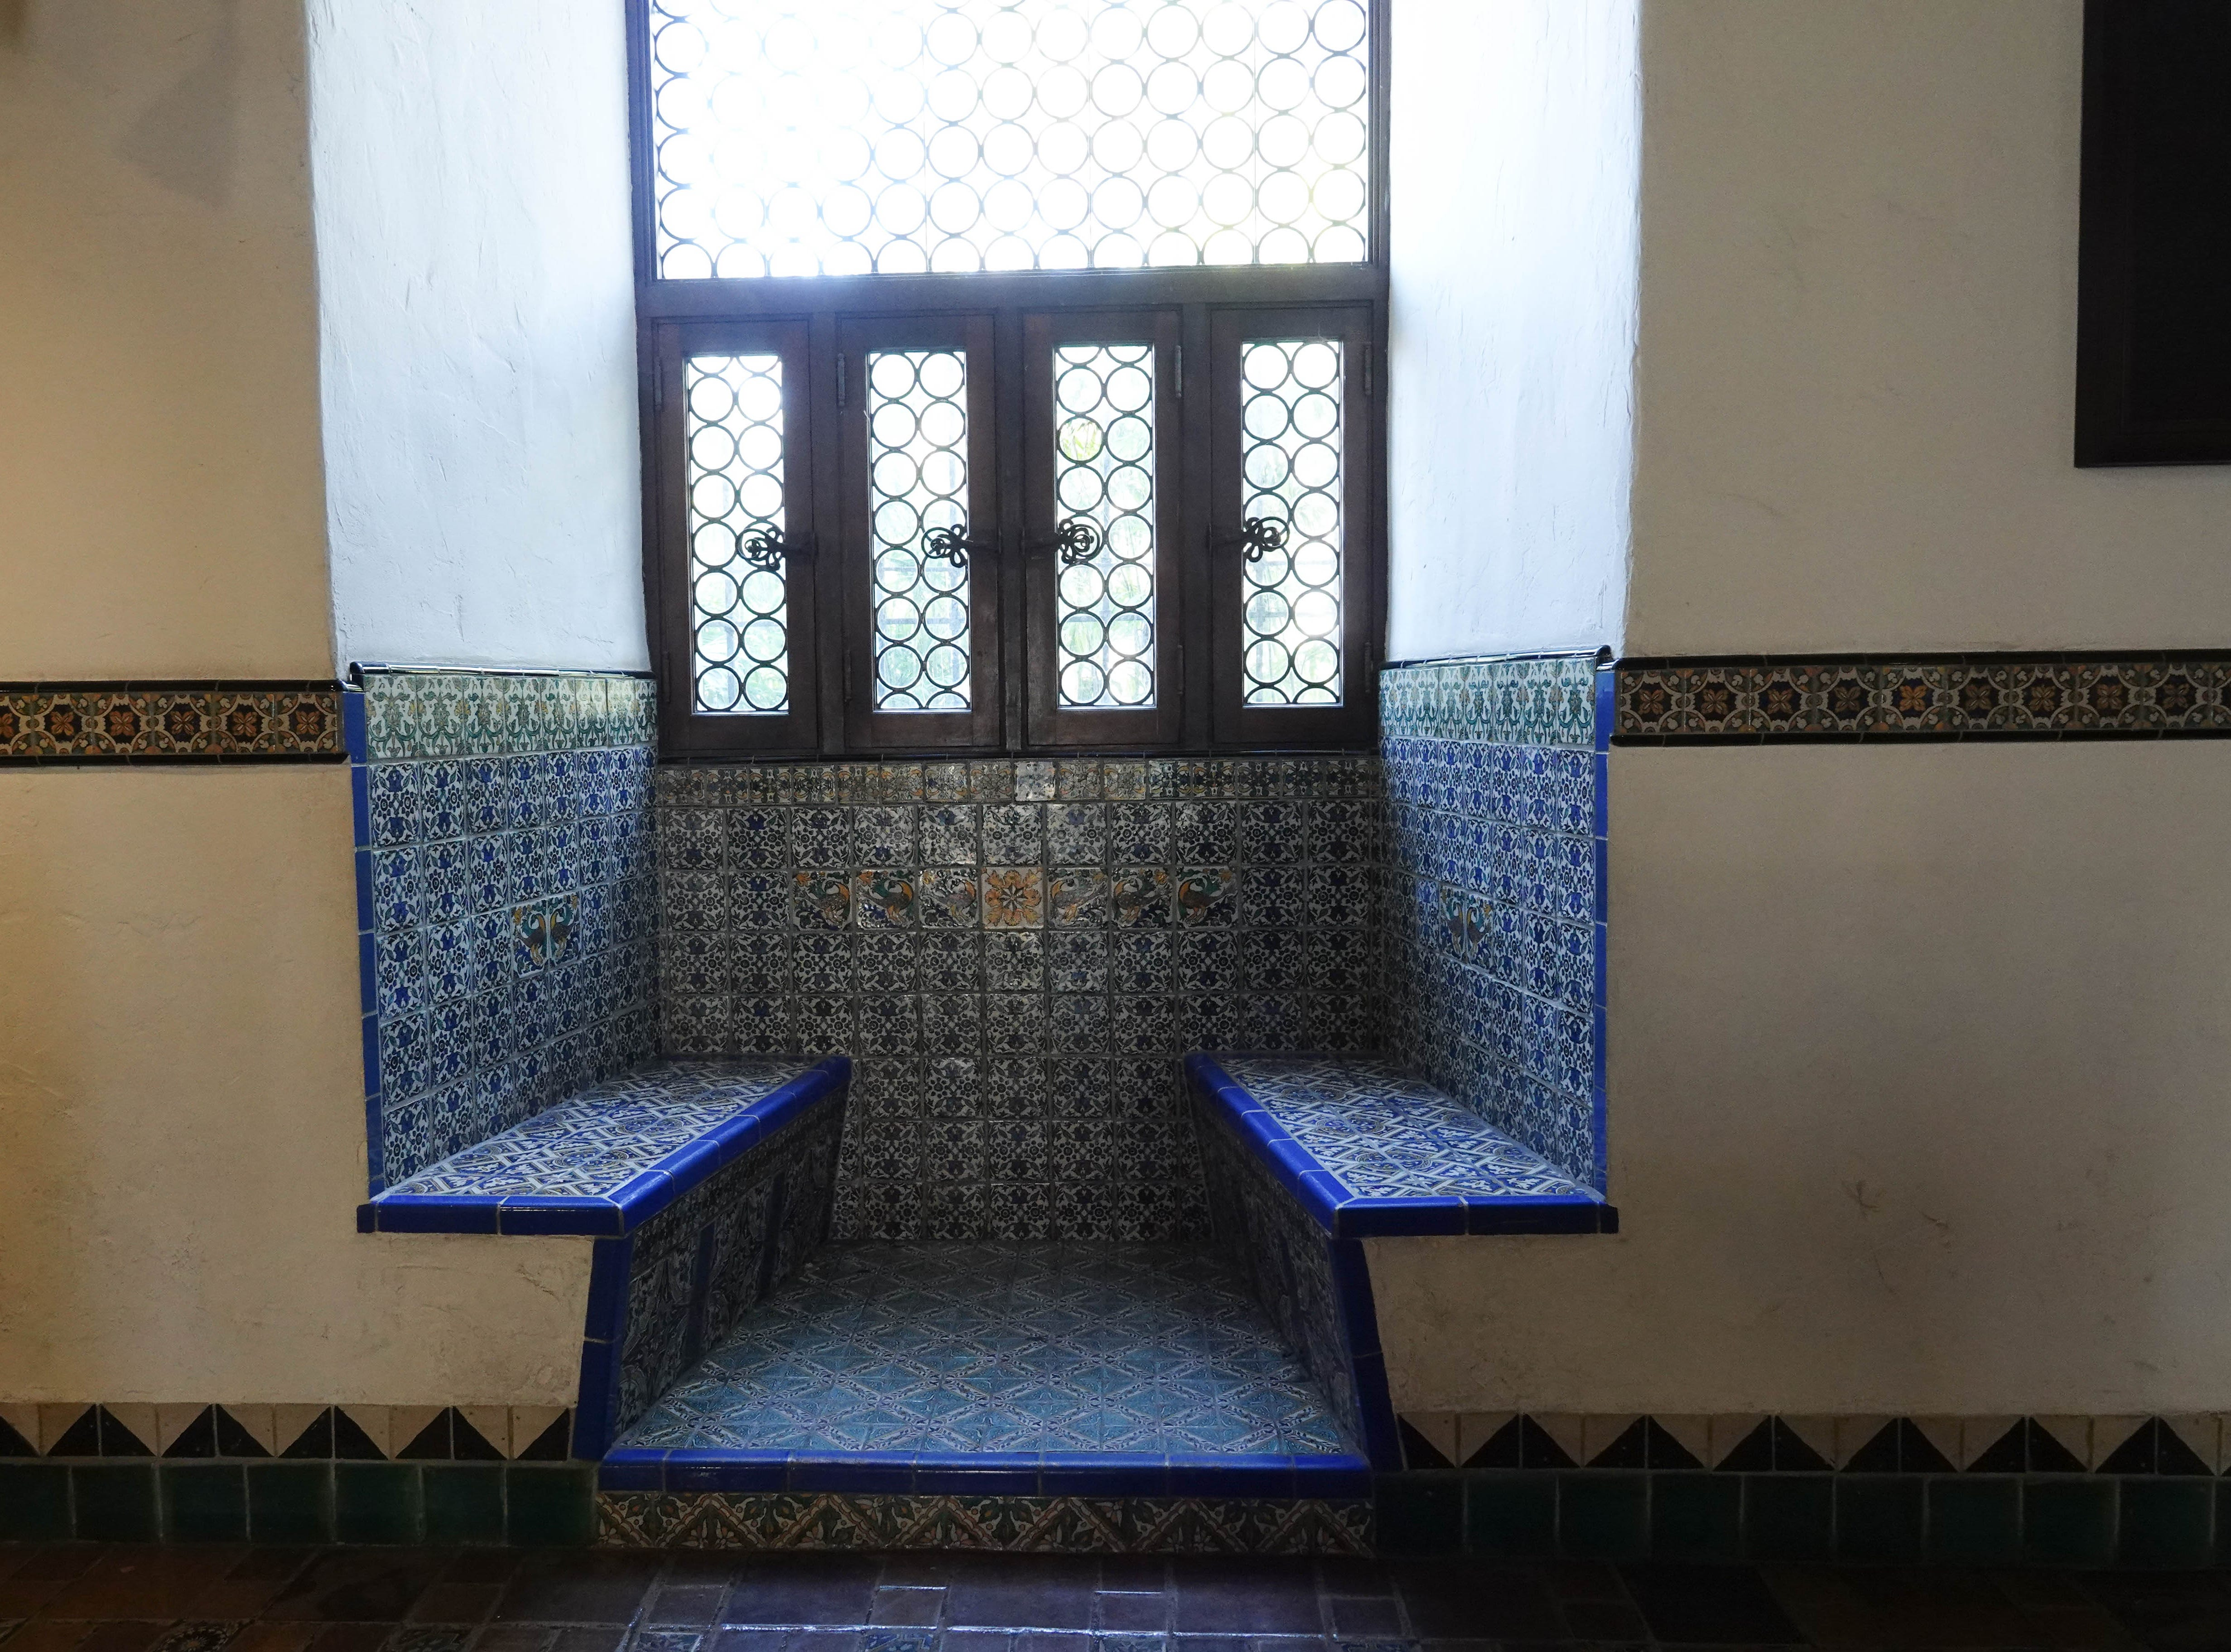 Mosaic-tiled seating.